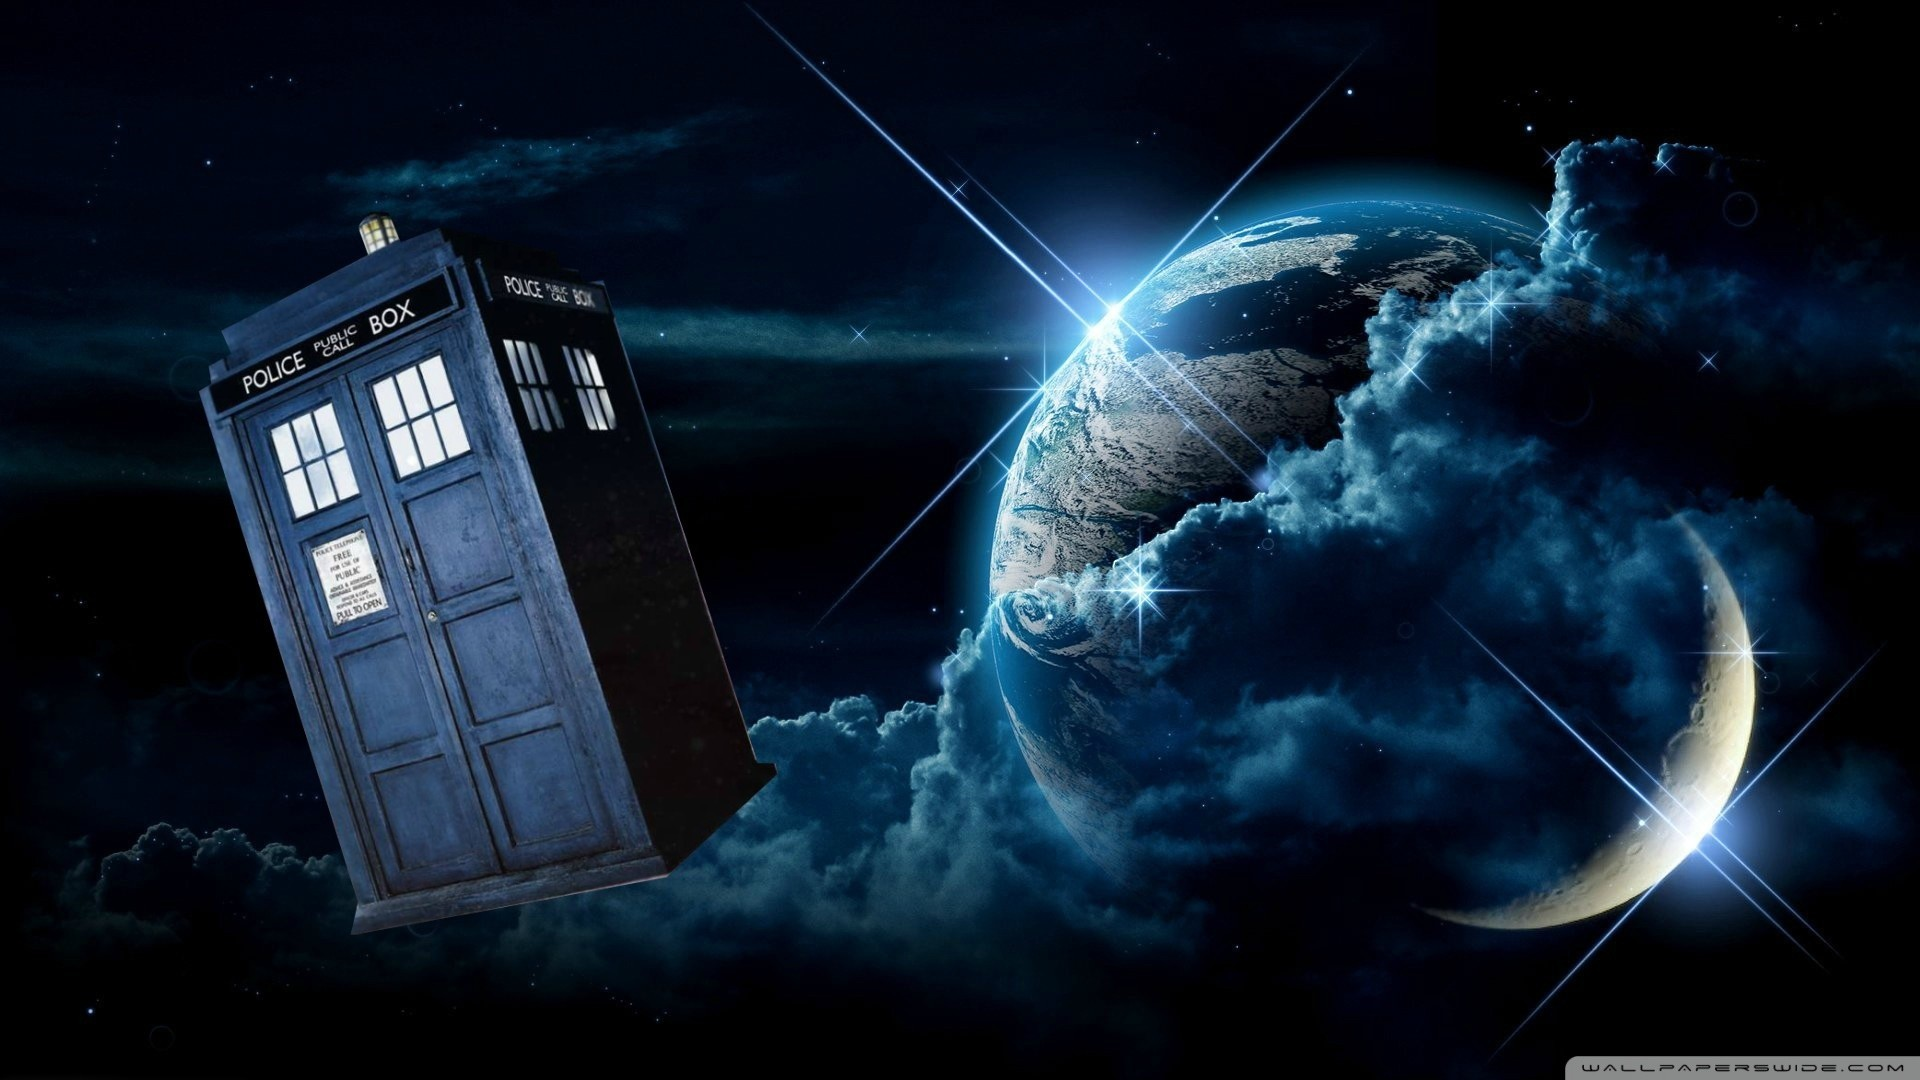 1920x1080  Doctor Who Tardis Wallpaper in HQ Resolution